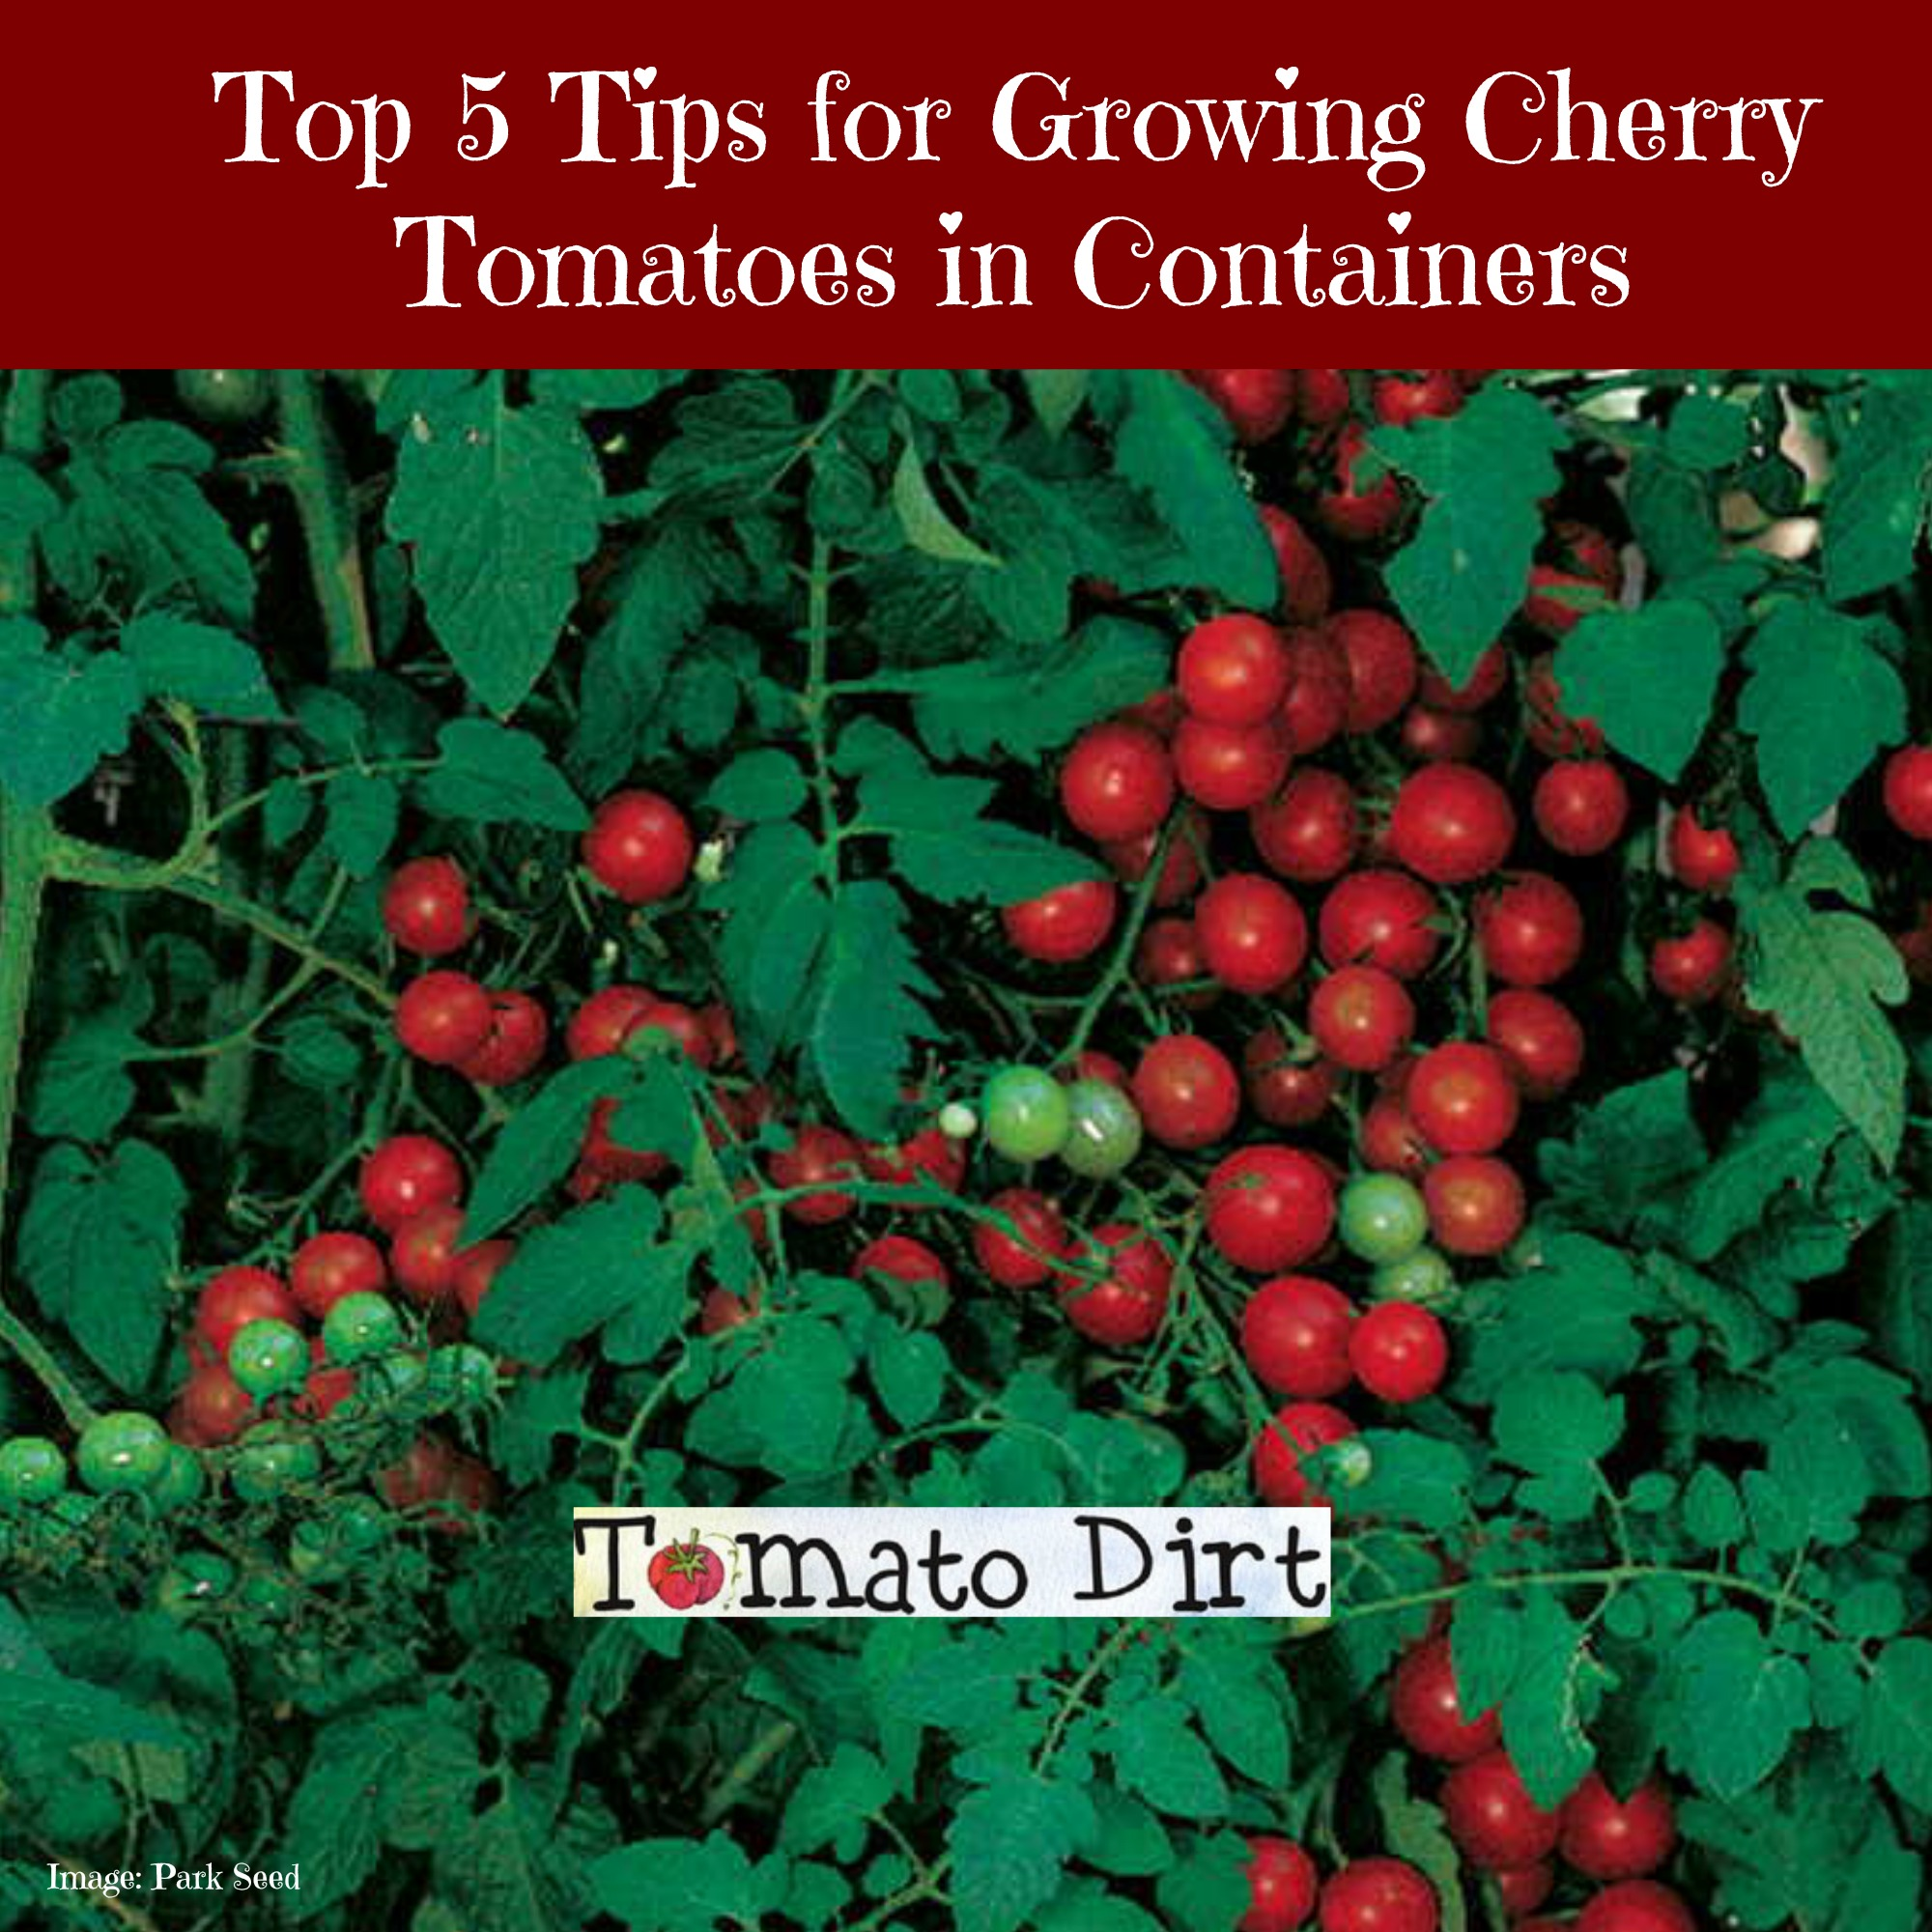 5 Tips for Growing Cherry Tomatoes in Containers